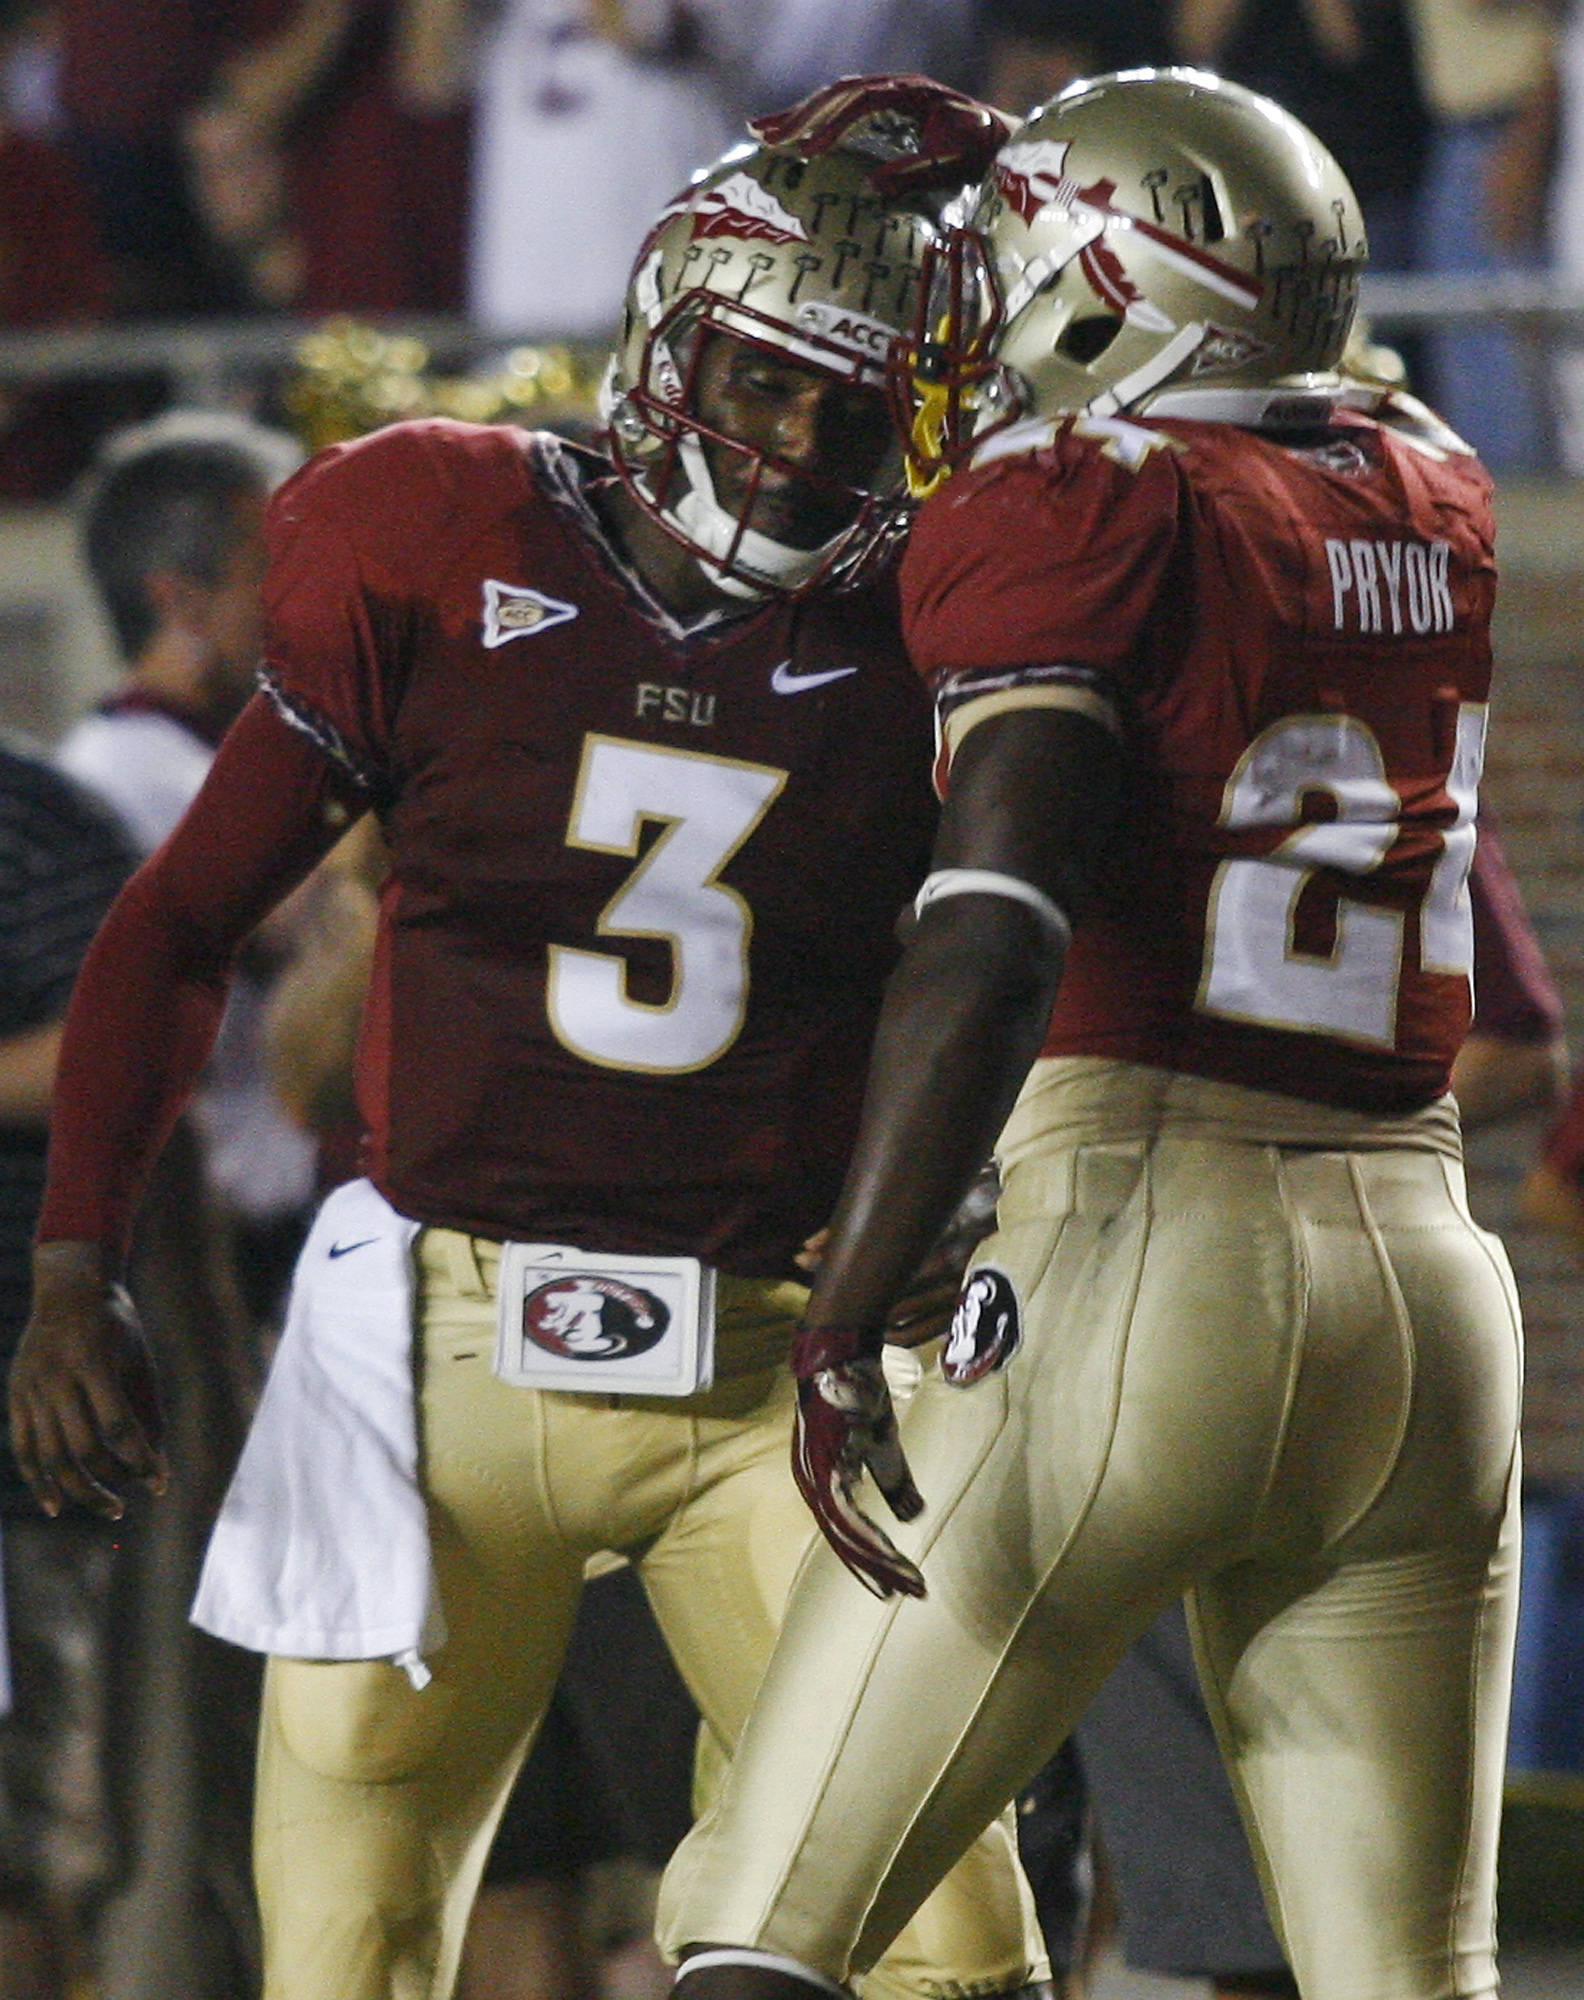 Florida State quarterback E.J. Manuel (3) and Florida State fullback Lonnie Pryor (24) celebrate Pryor's 13-yard touchdown. (AP Photo/Phil Sears)